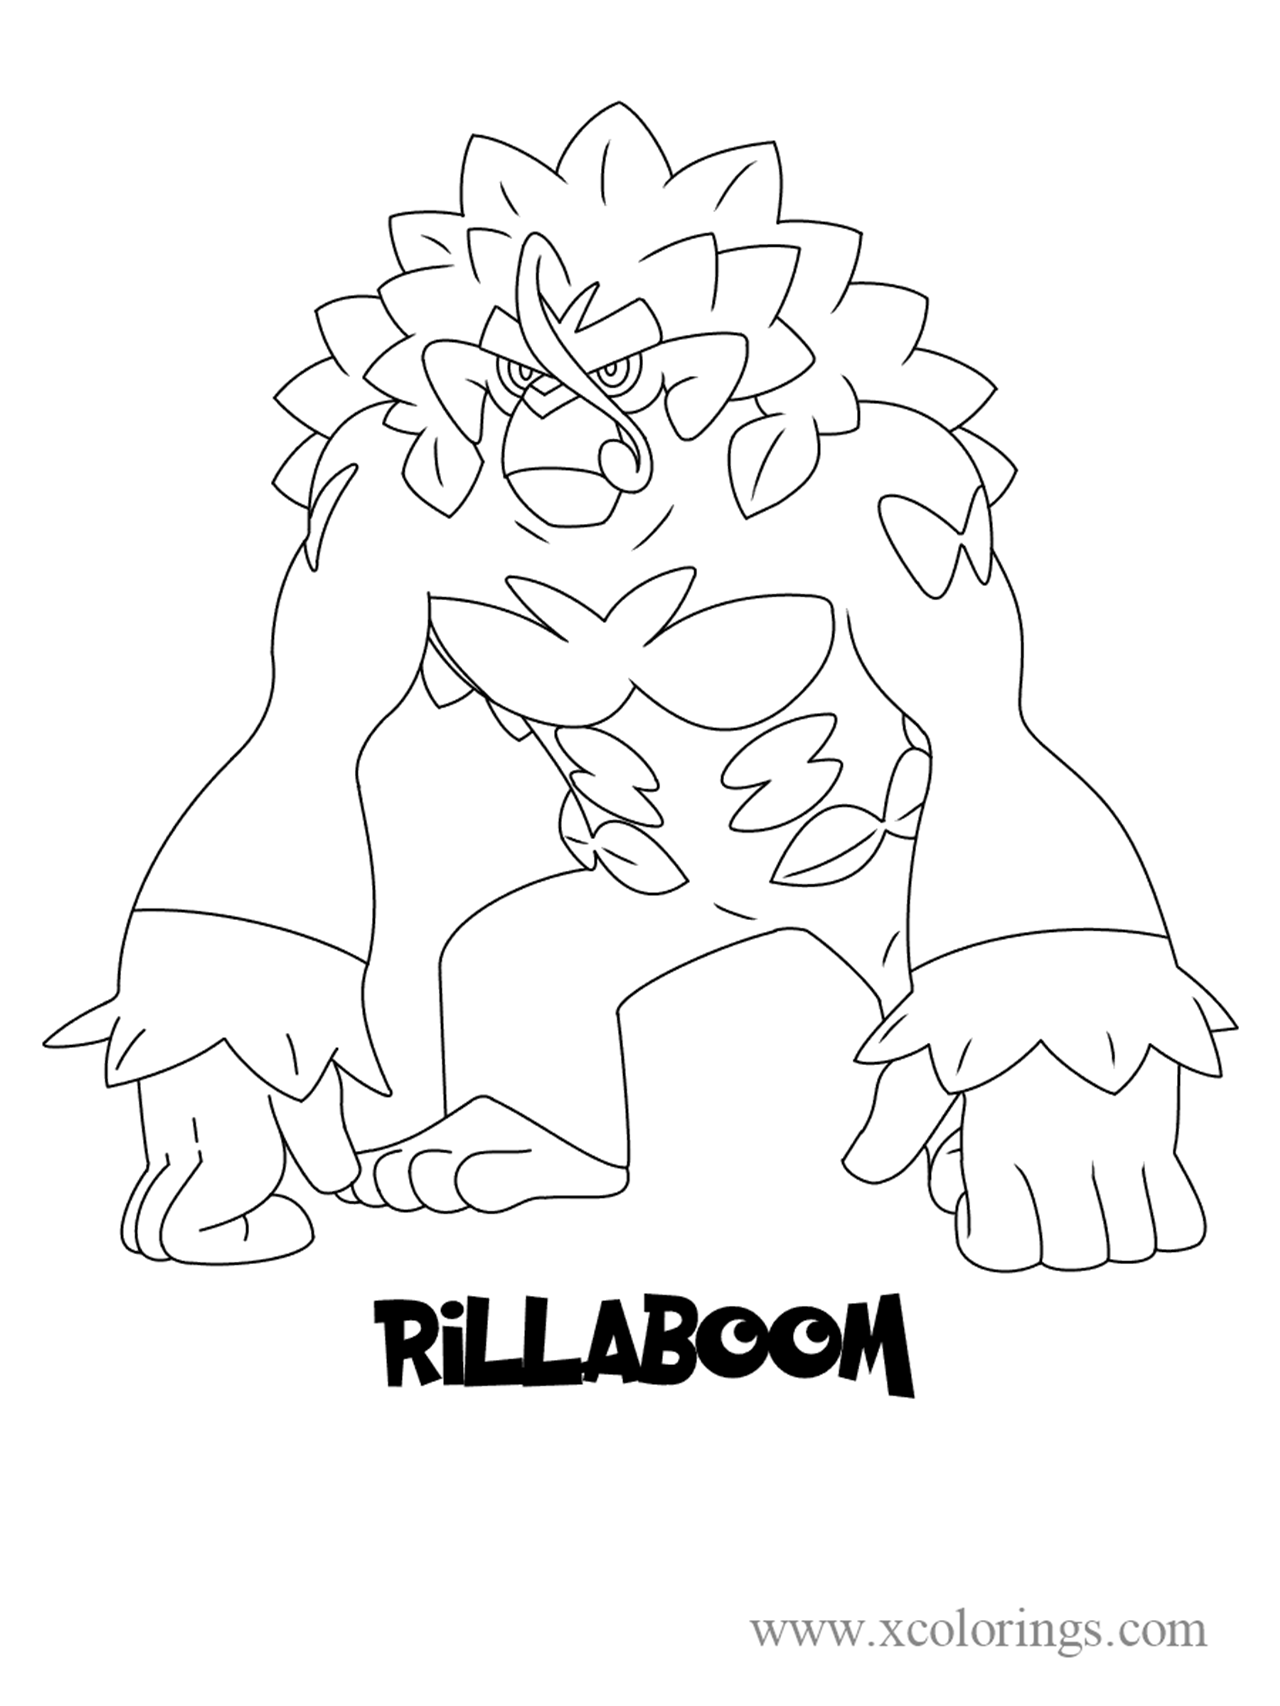 Pokemon sword and shield Rillaboom Coloring Pages - XColorings